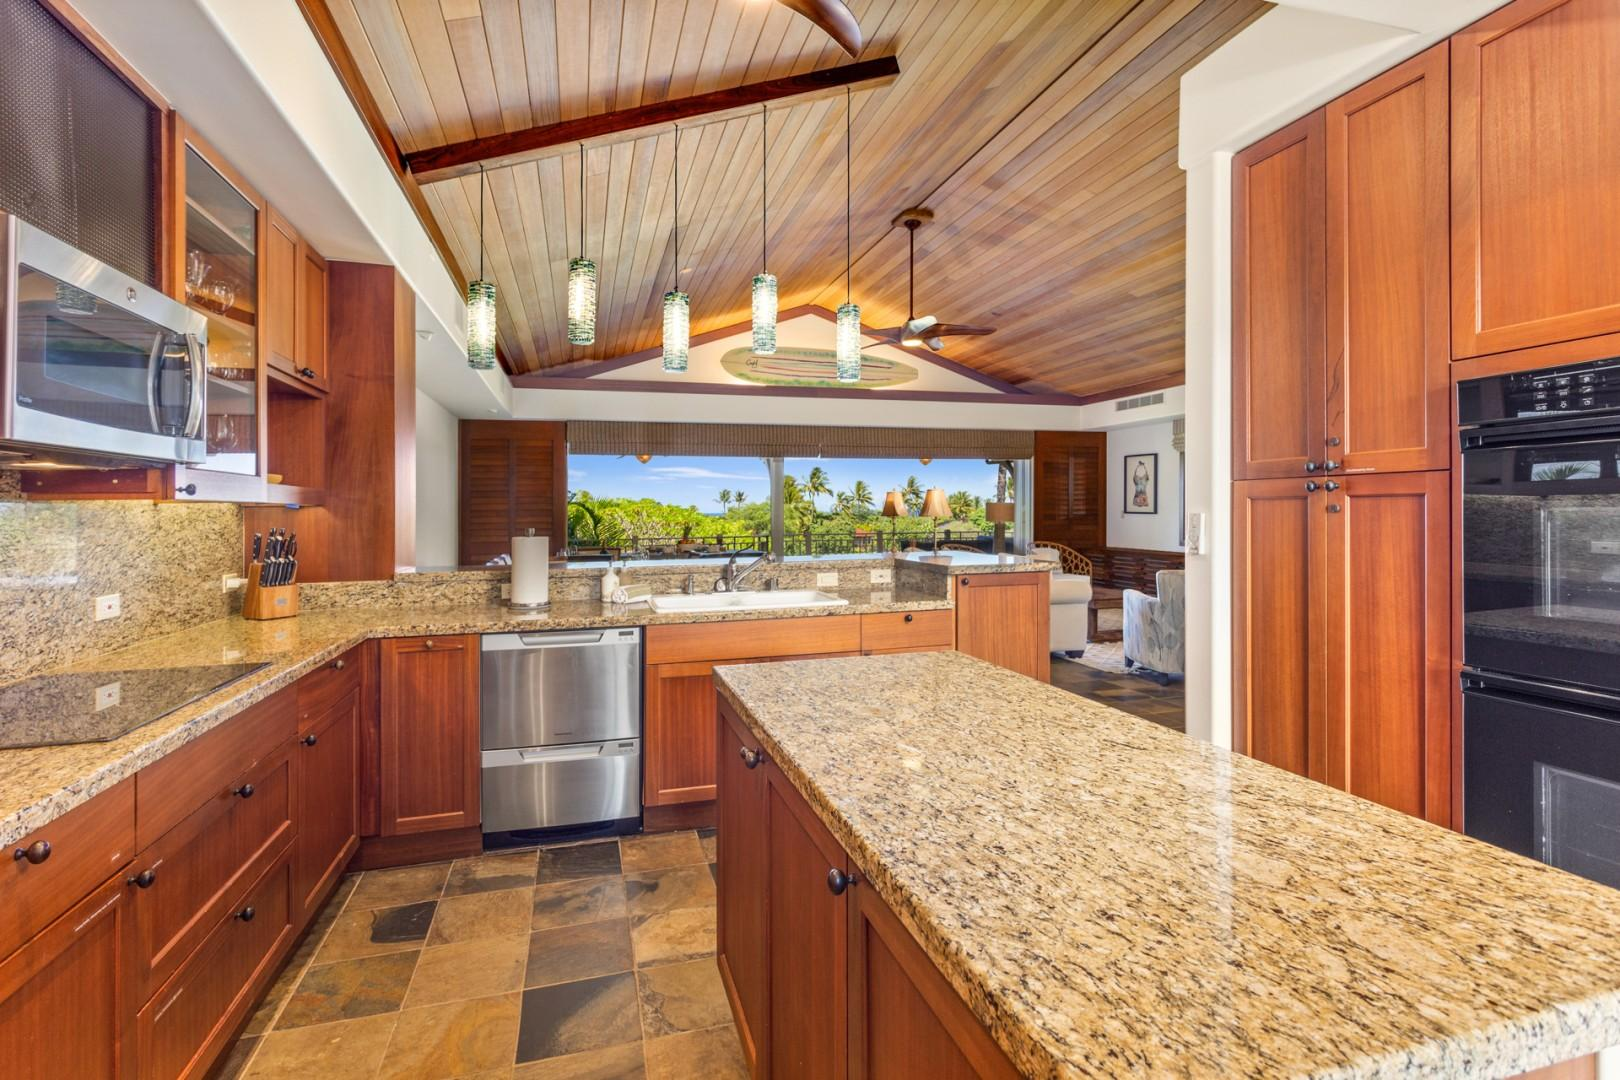 Gleaming top tier appliances, granite countertops and elegant lighting - a chef's delight!